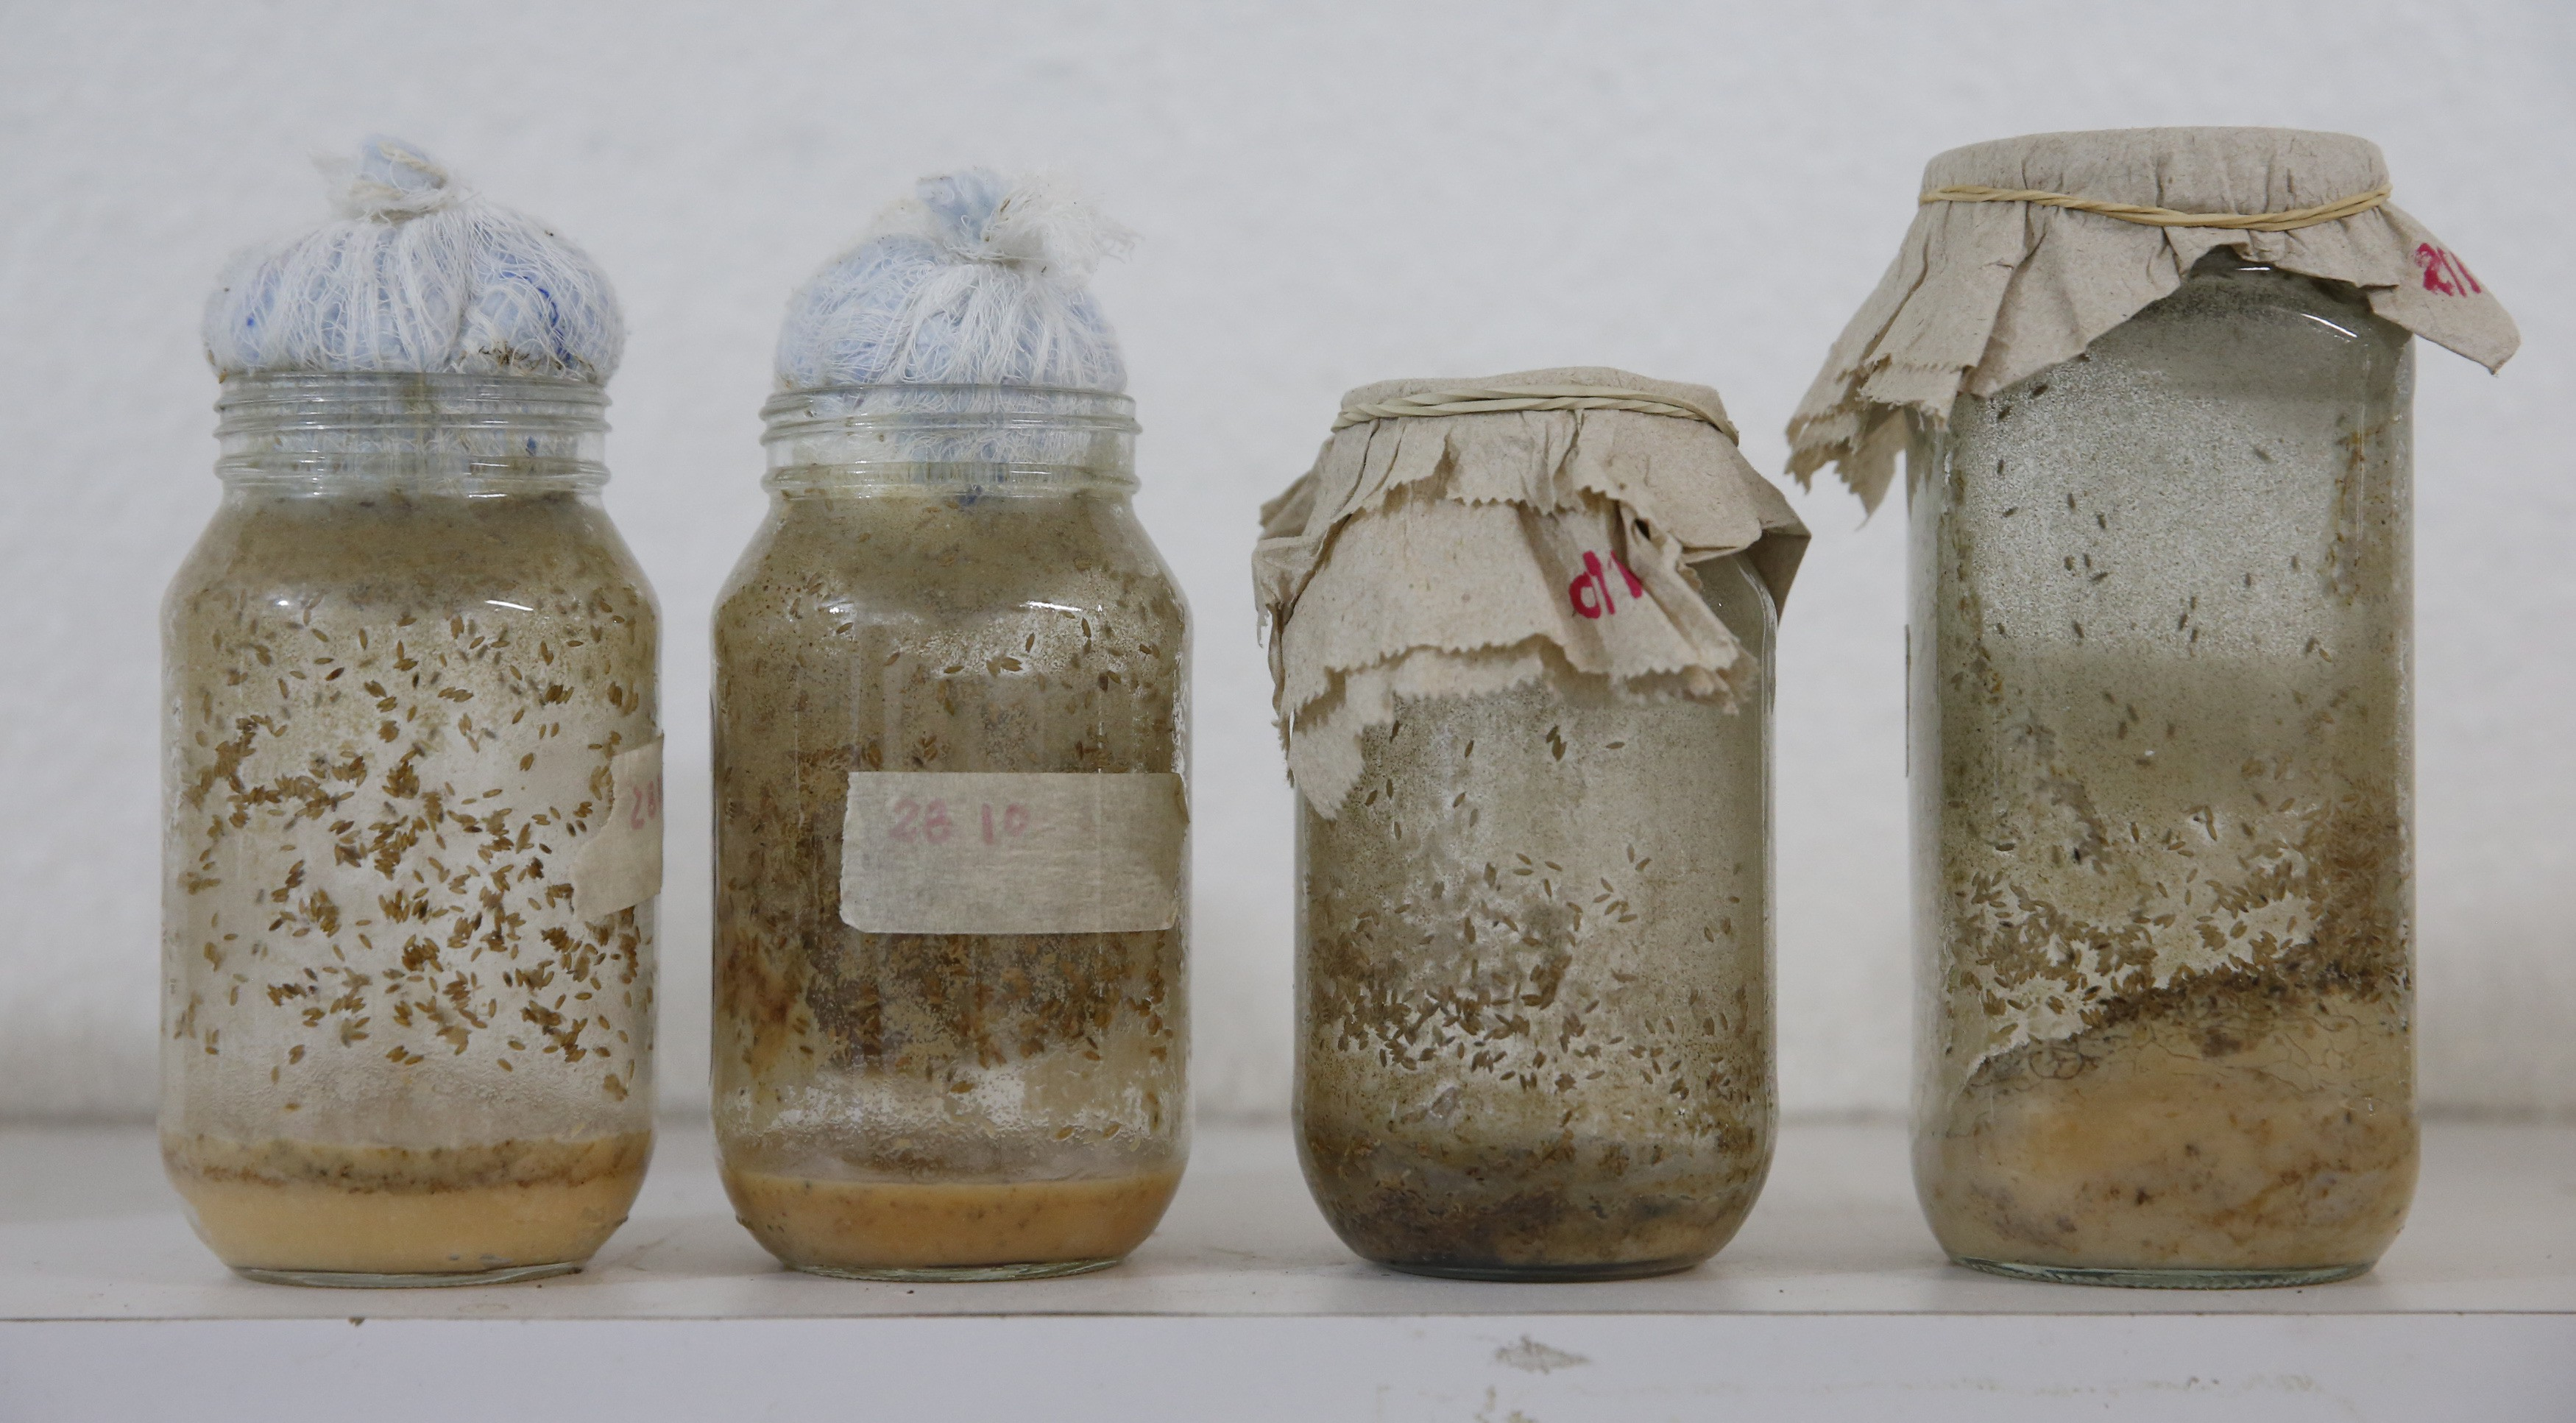 Drosophila melanogaster larvae, that will be used as part of the diet for frogs, are seen inside glass containers at the terrarium facilities in Caracas November 30, 2015. Venezuelan frogs and toads are in critical danger due to climate change as rising temperatures complicate reproduction and spread a deadly fungus, say scientists, who liken the species to canaries in a coalmine warning of imminent danger. The survival of a group of nearly 20 frog and toad species, which top Venezuela's list of endangered species, may rest on a small group of academics in a Caracas laboratory attempting to recreate the amphibians' natural reproductive conditions. Picture taken on November 30, 2015. REUTERS/Carlos Garcia Rawlins - RTX1YU4C